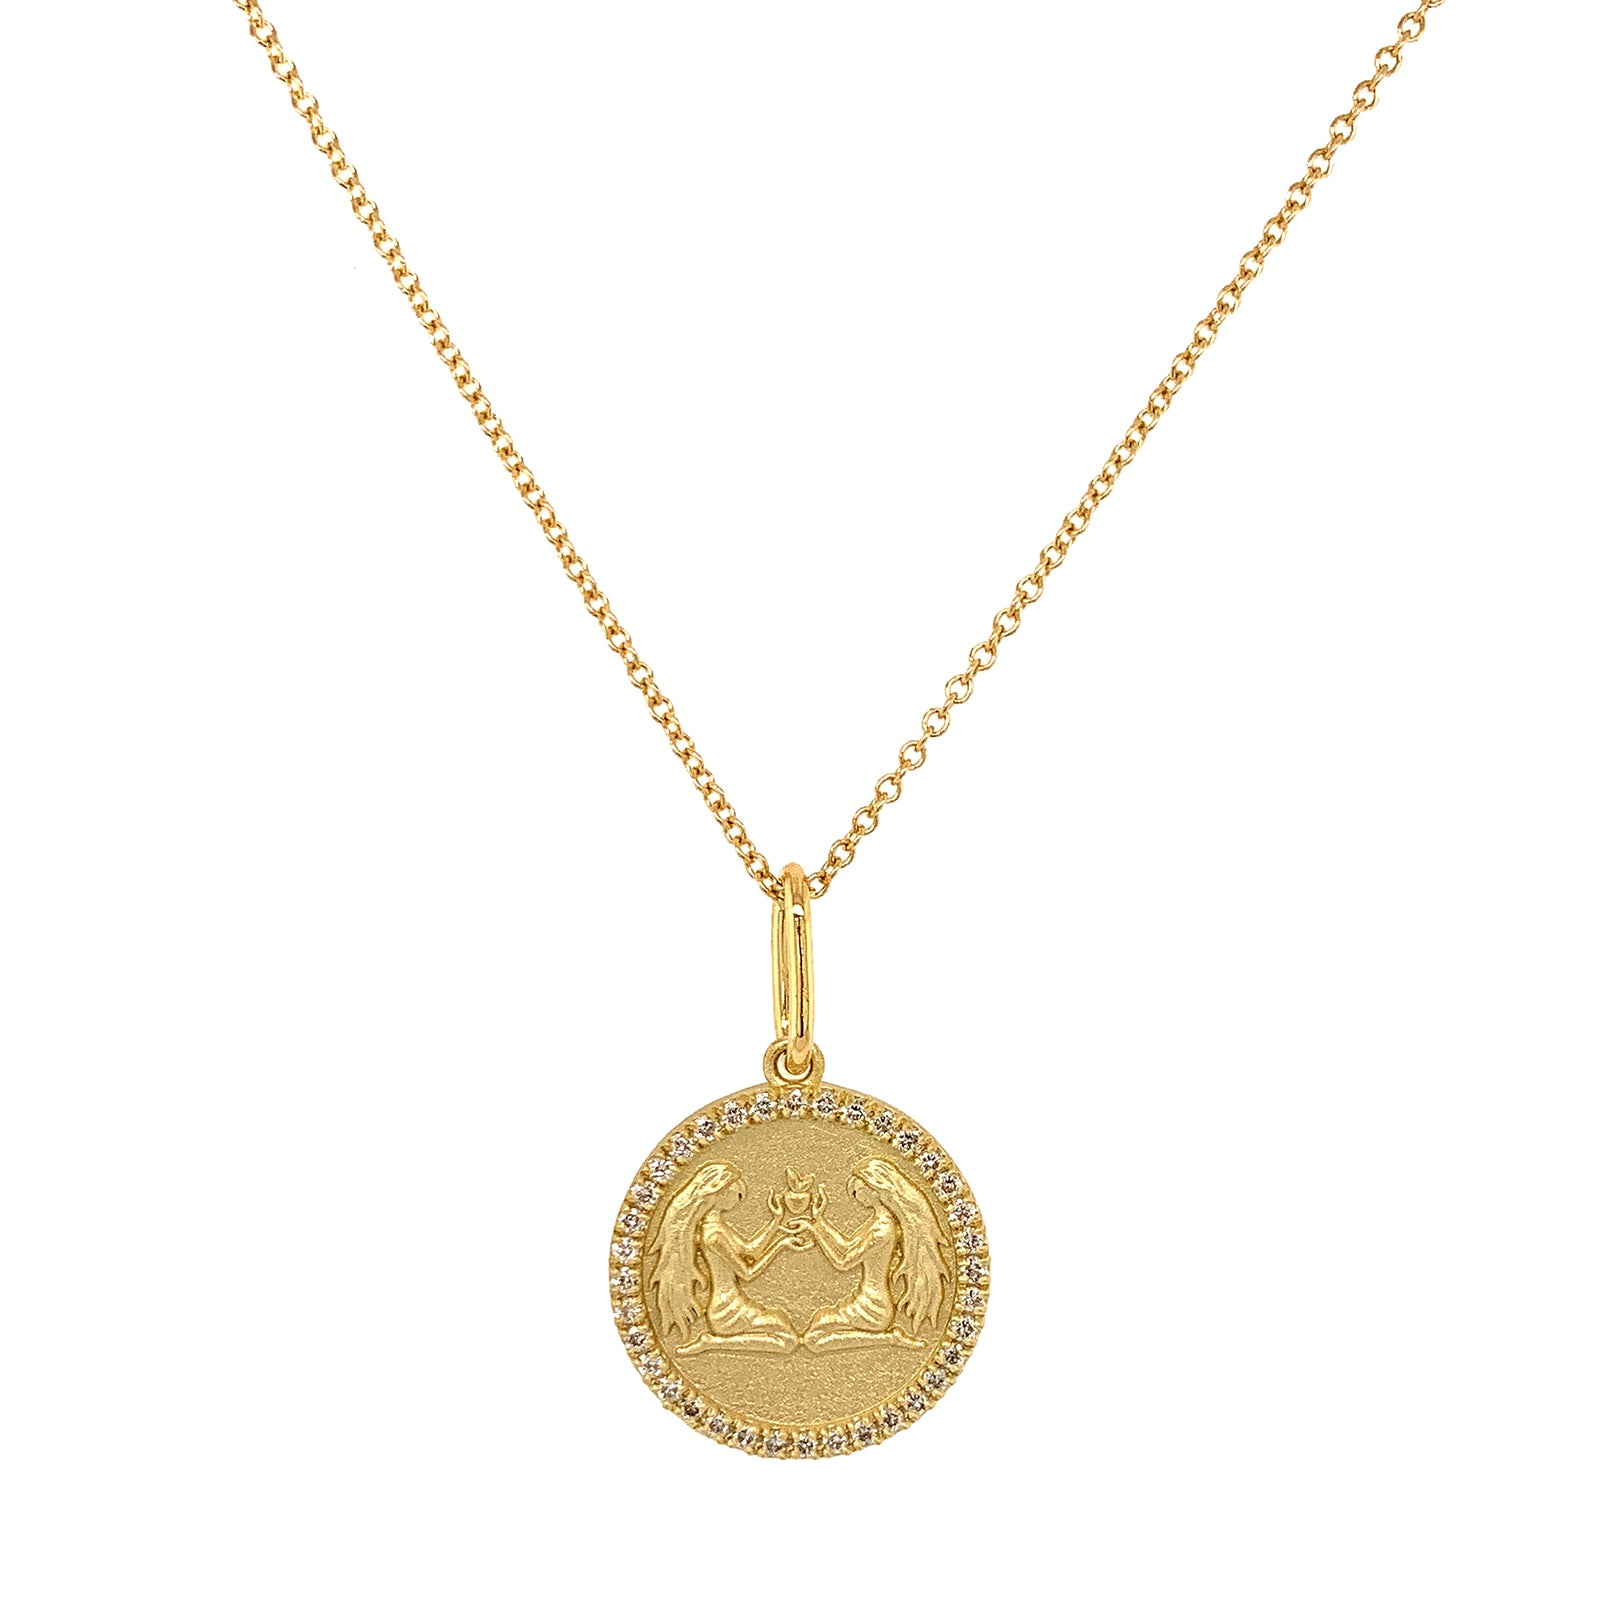 Colette Zodiac Necklace - Gemini - Necklaces - Broken English Jewelry